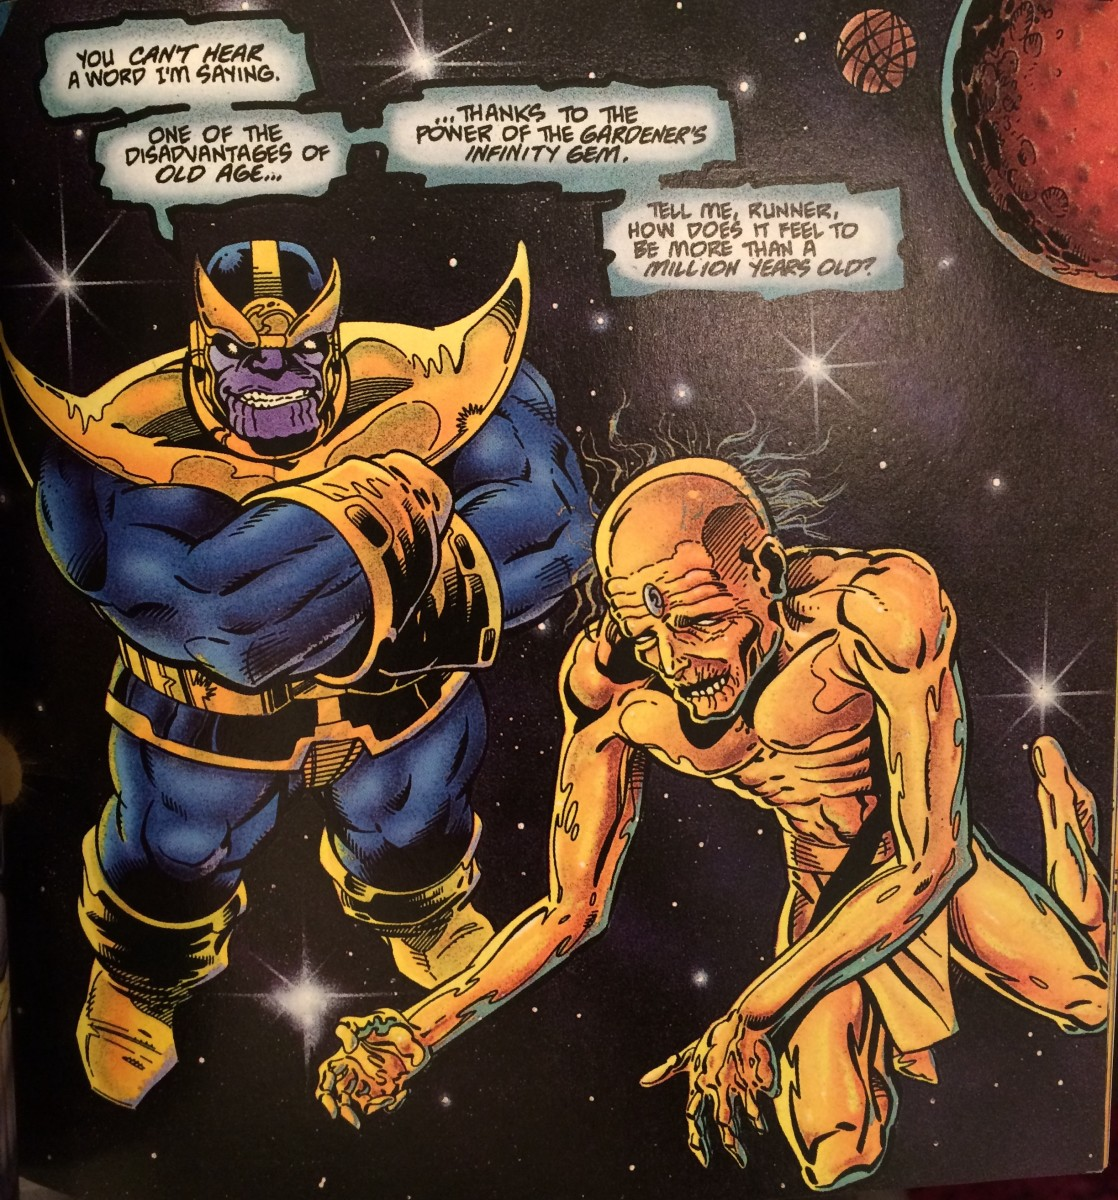 From The Thanos Quest: the Time Gem has aged the Runner a million years